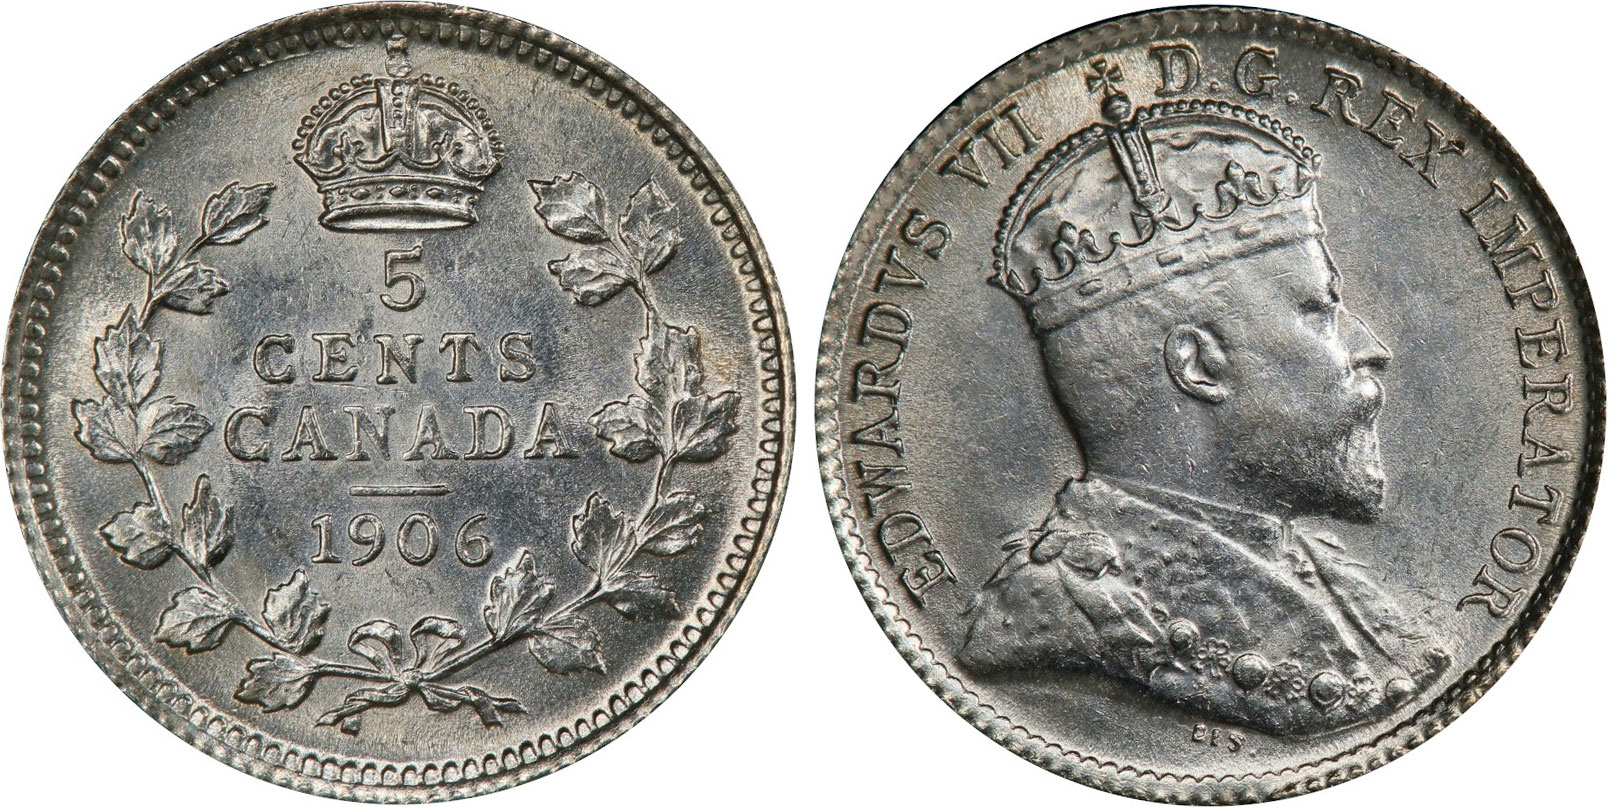 5 cents 1906